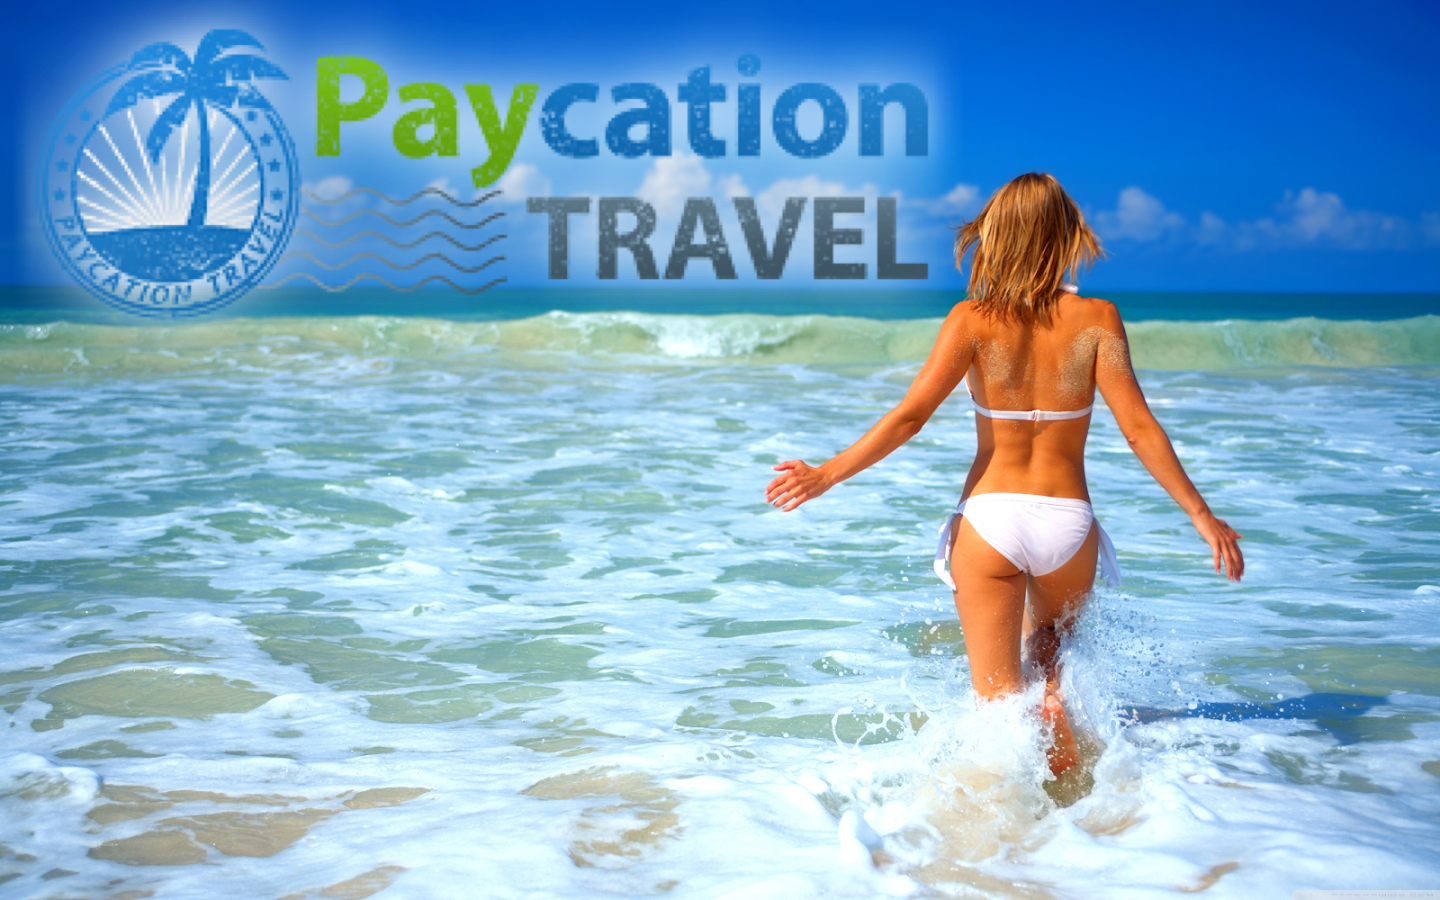 Paycation reviews don't tell you what you really need to know